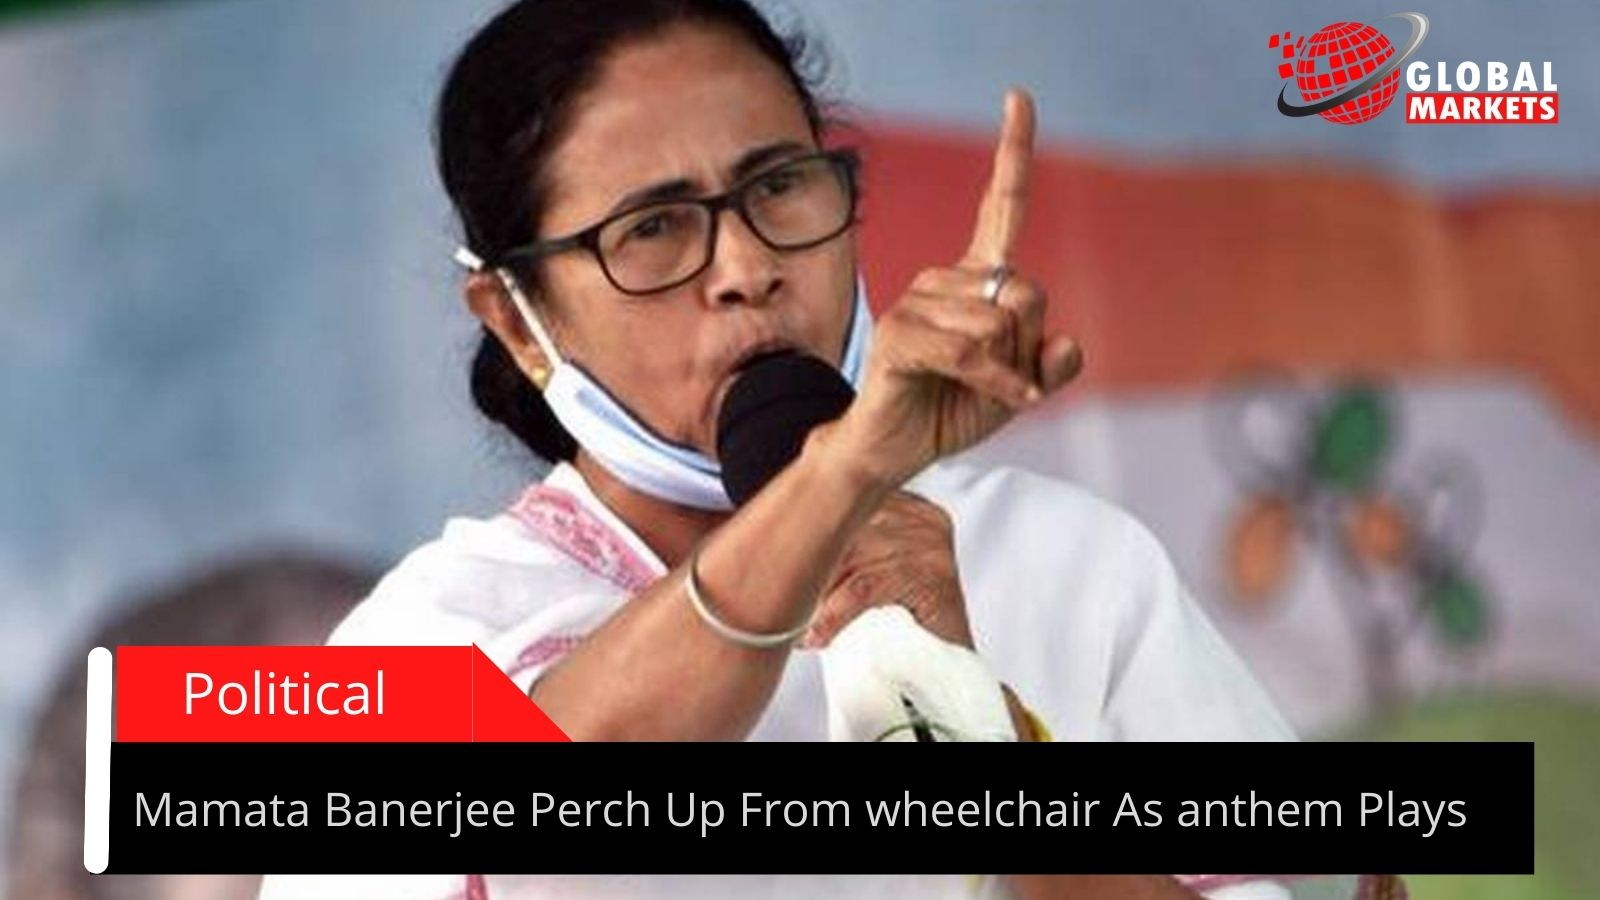 Mamata Banerjee Perch Up From wheelchair As anthem Plays